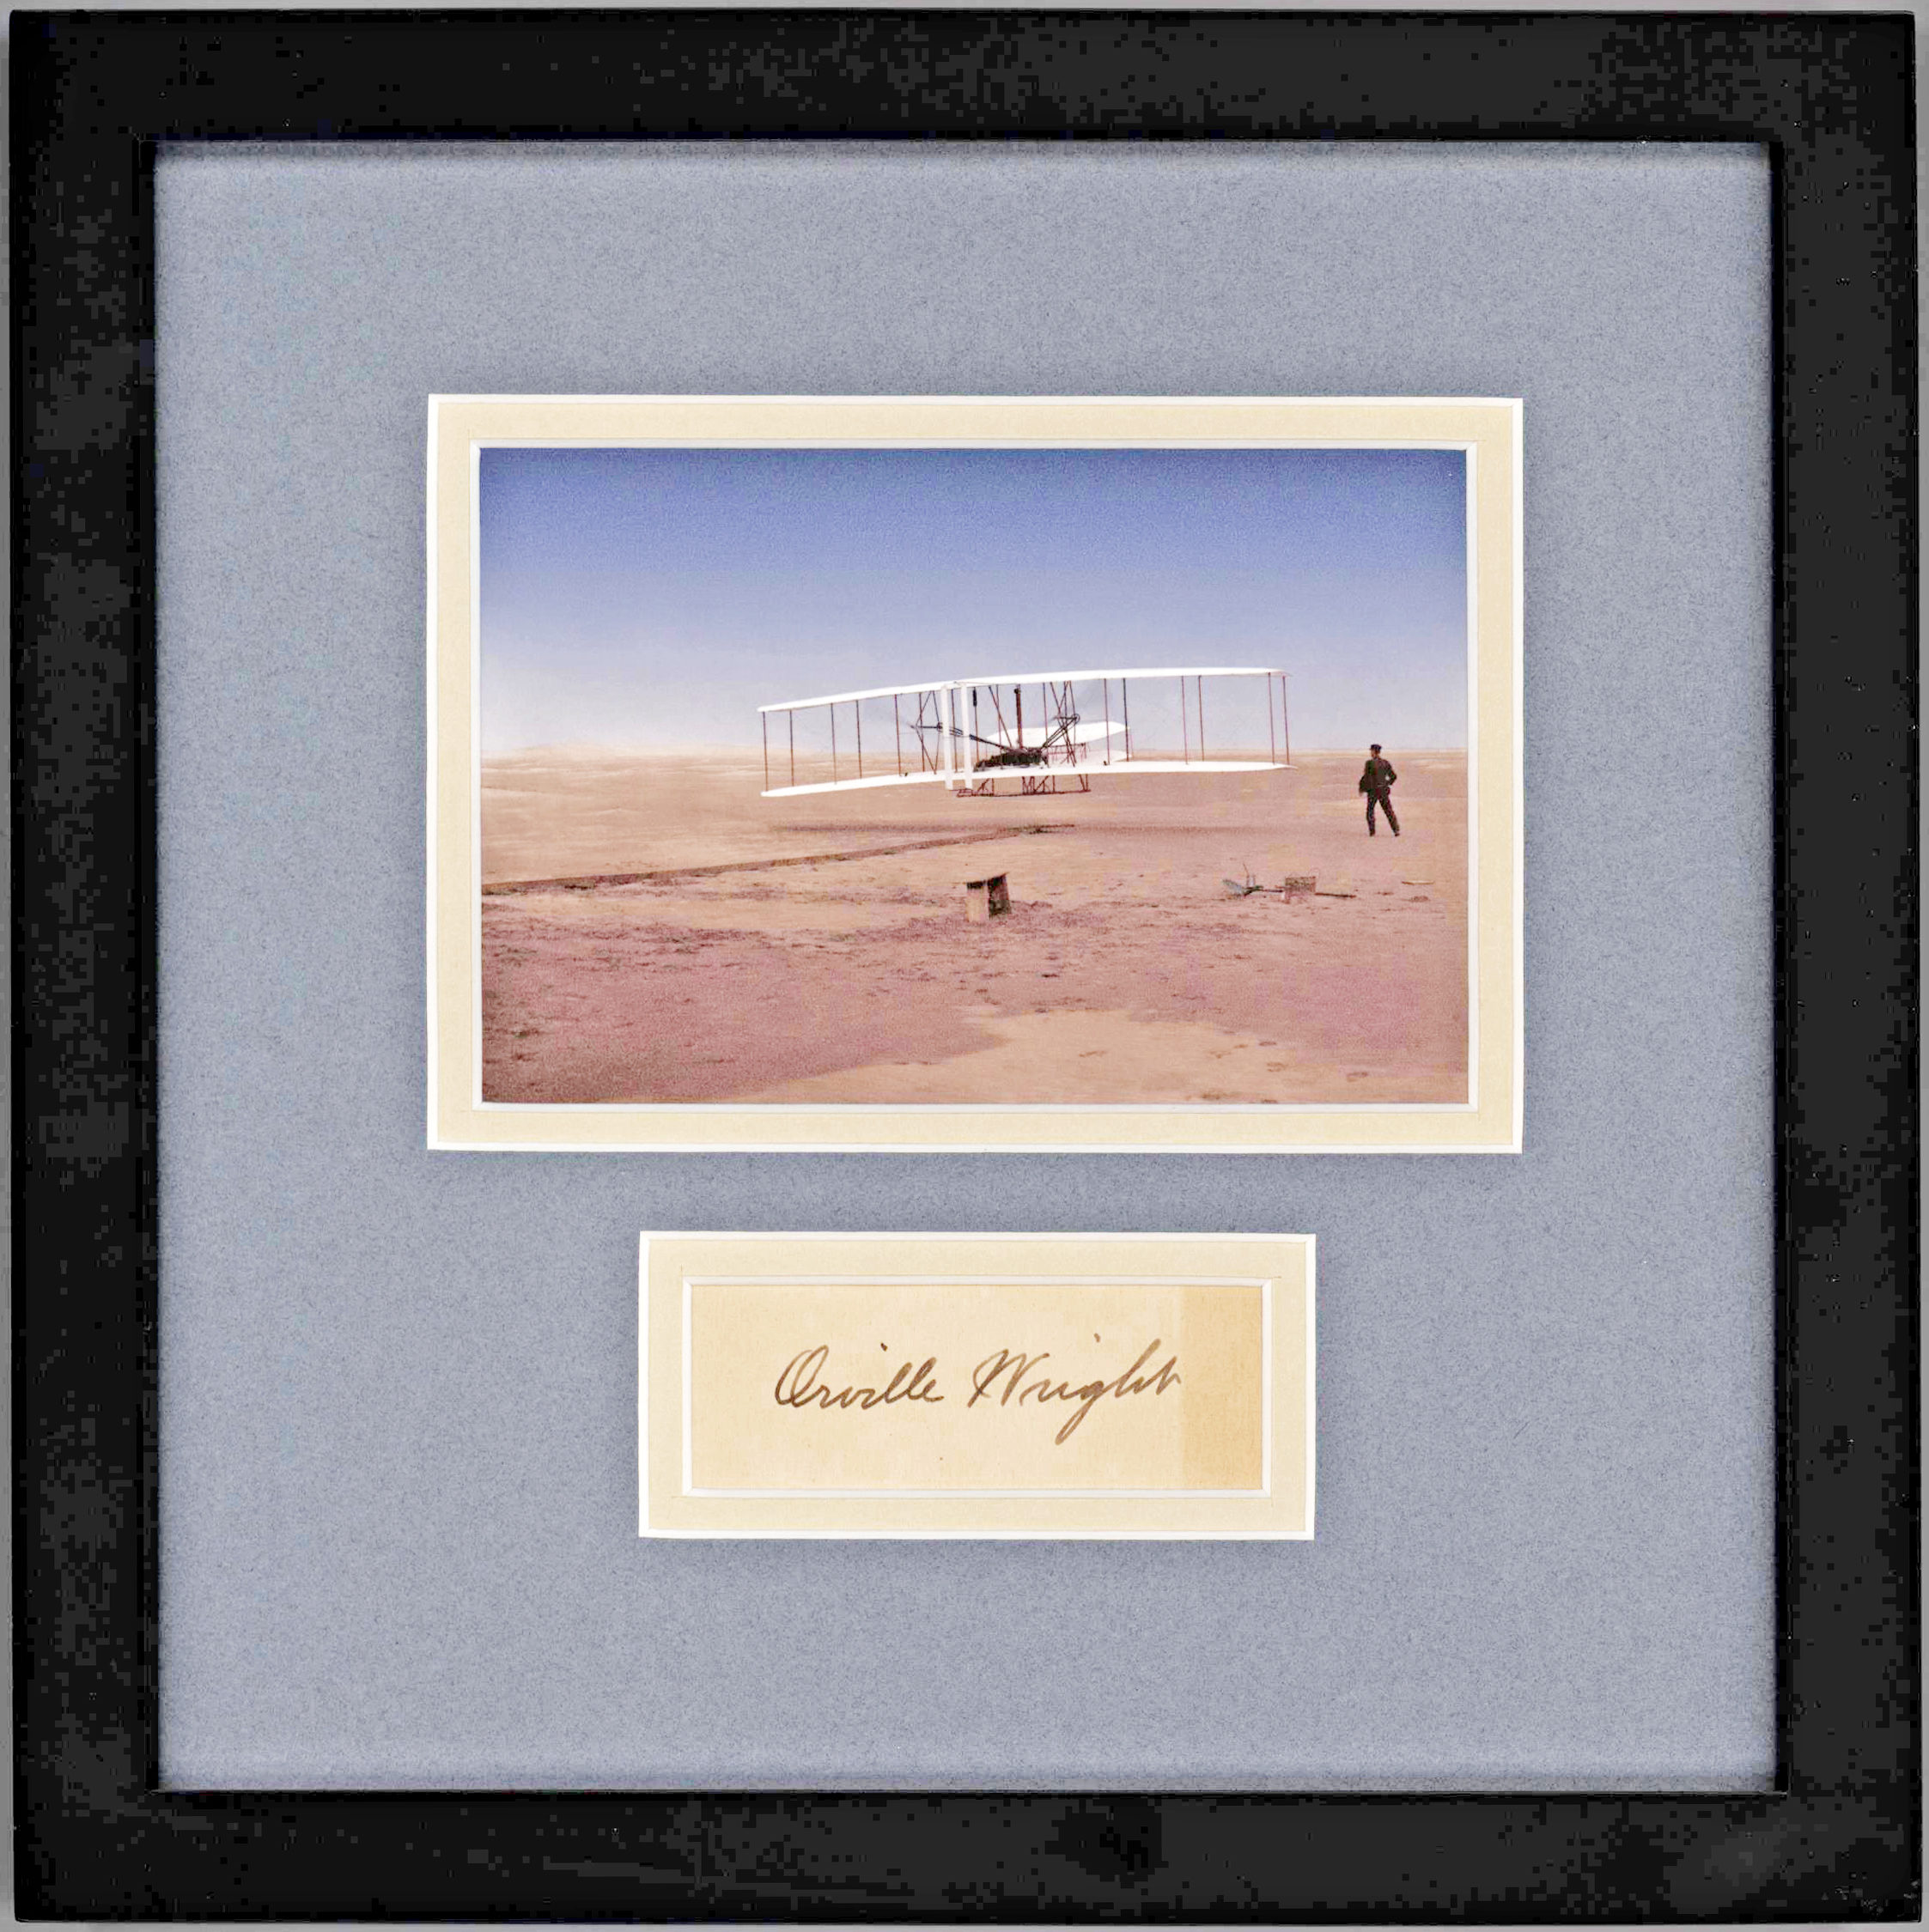 Stunning, Archivally-Framed and Matted Signature of Orville Wright